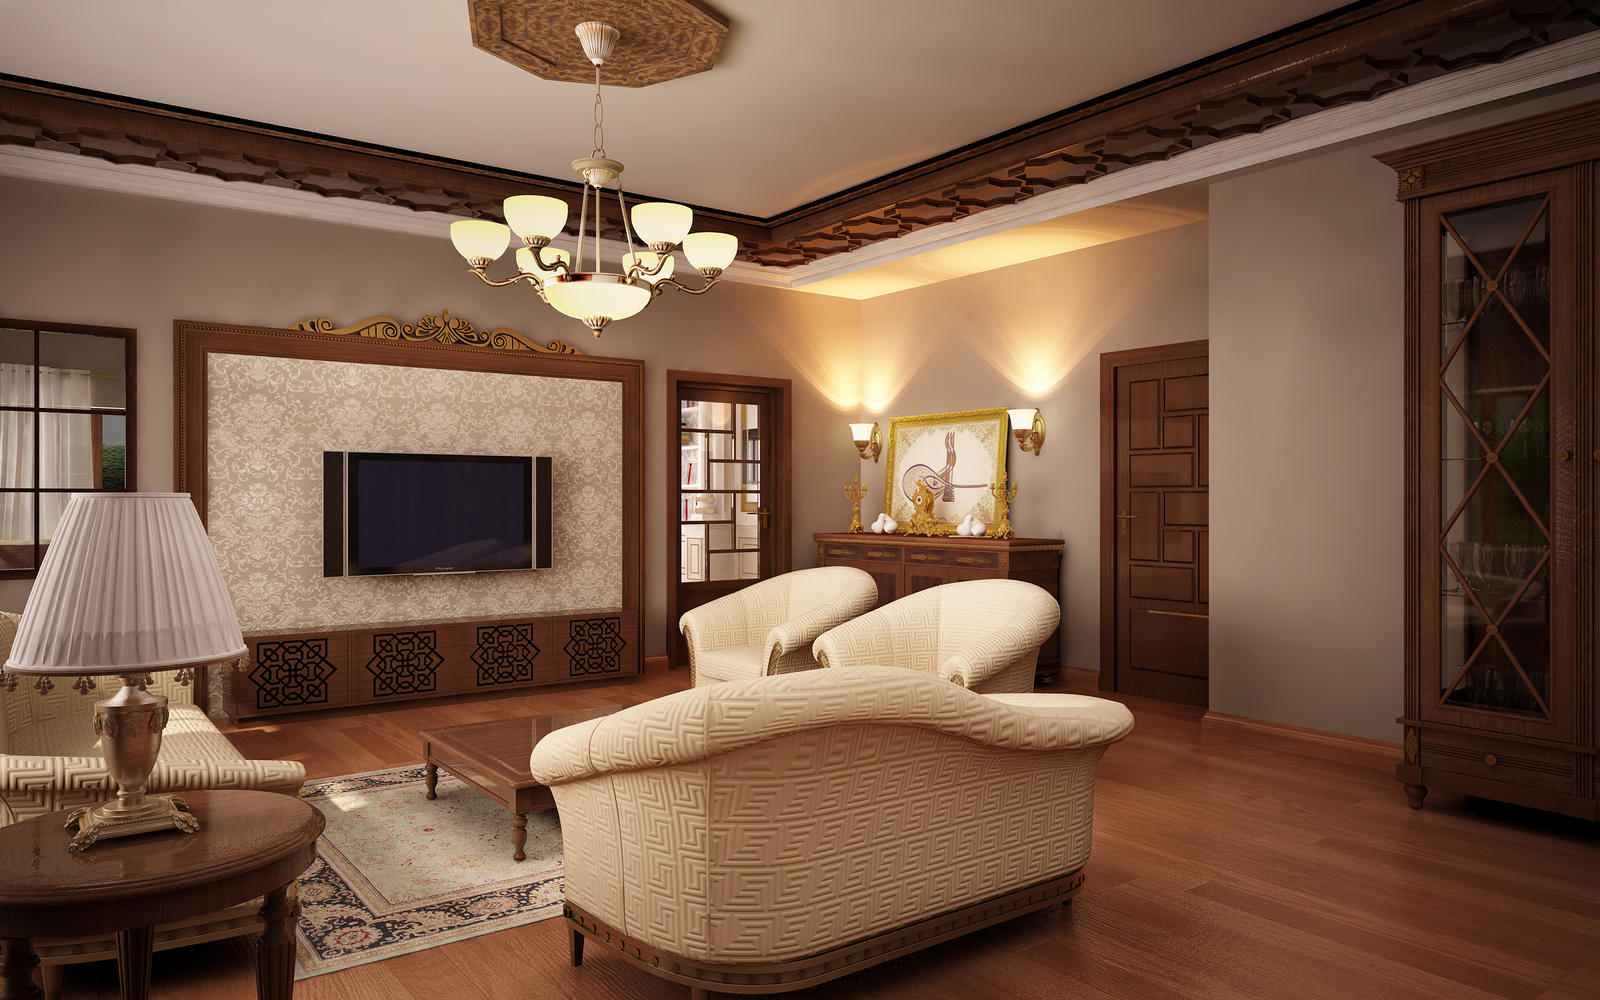 Classic Living Room. Classic Living Room 06 by Murataral on DeviantArt